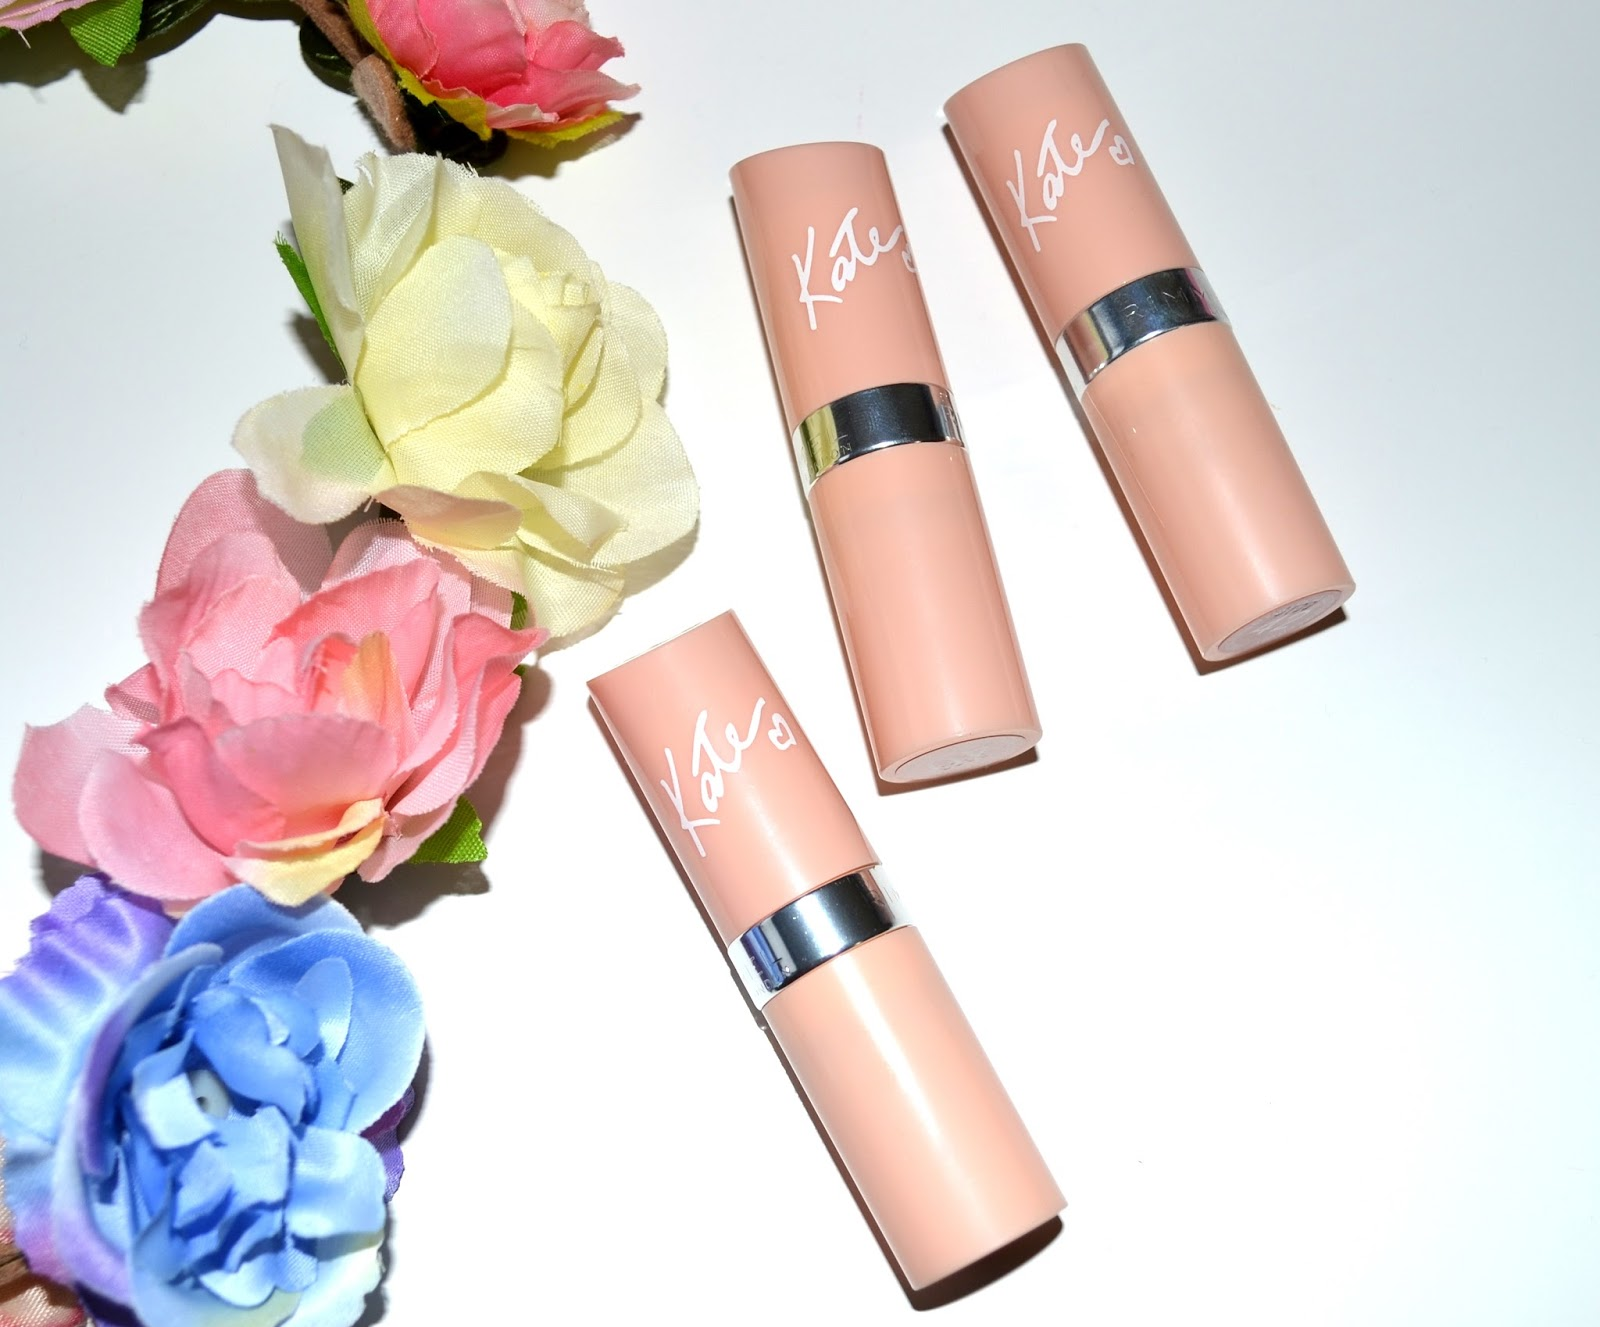 Rimmel Lasting Finish Lipstick Nude Duo from Simply Be